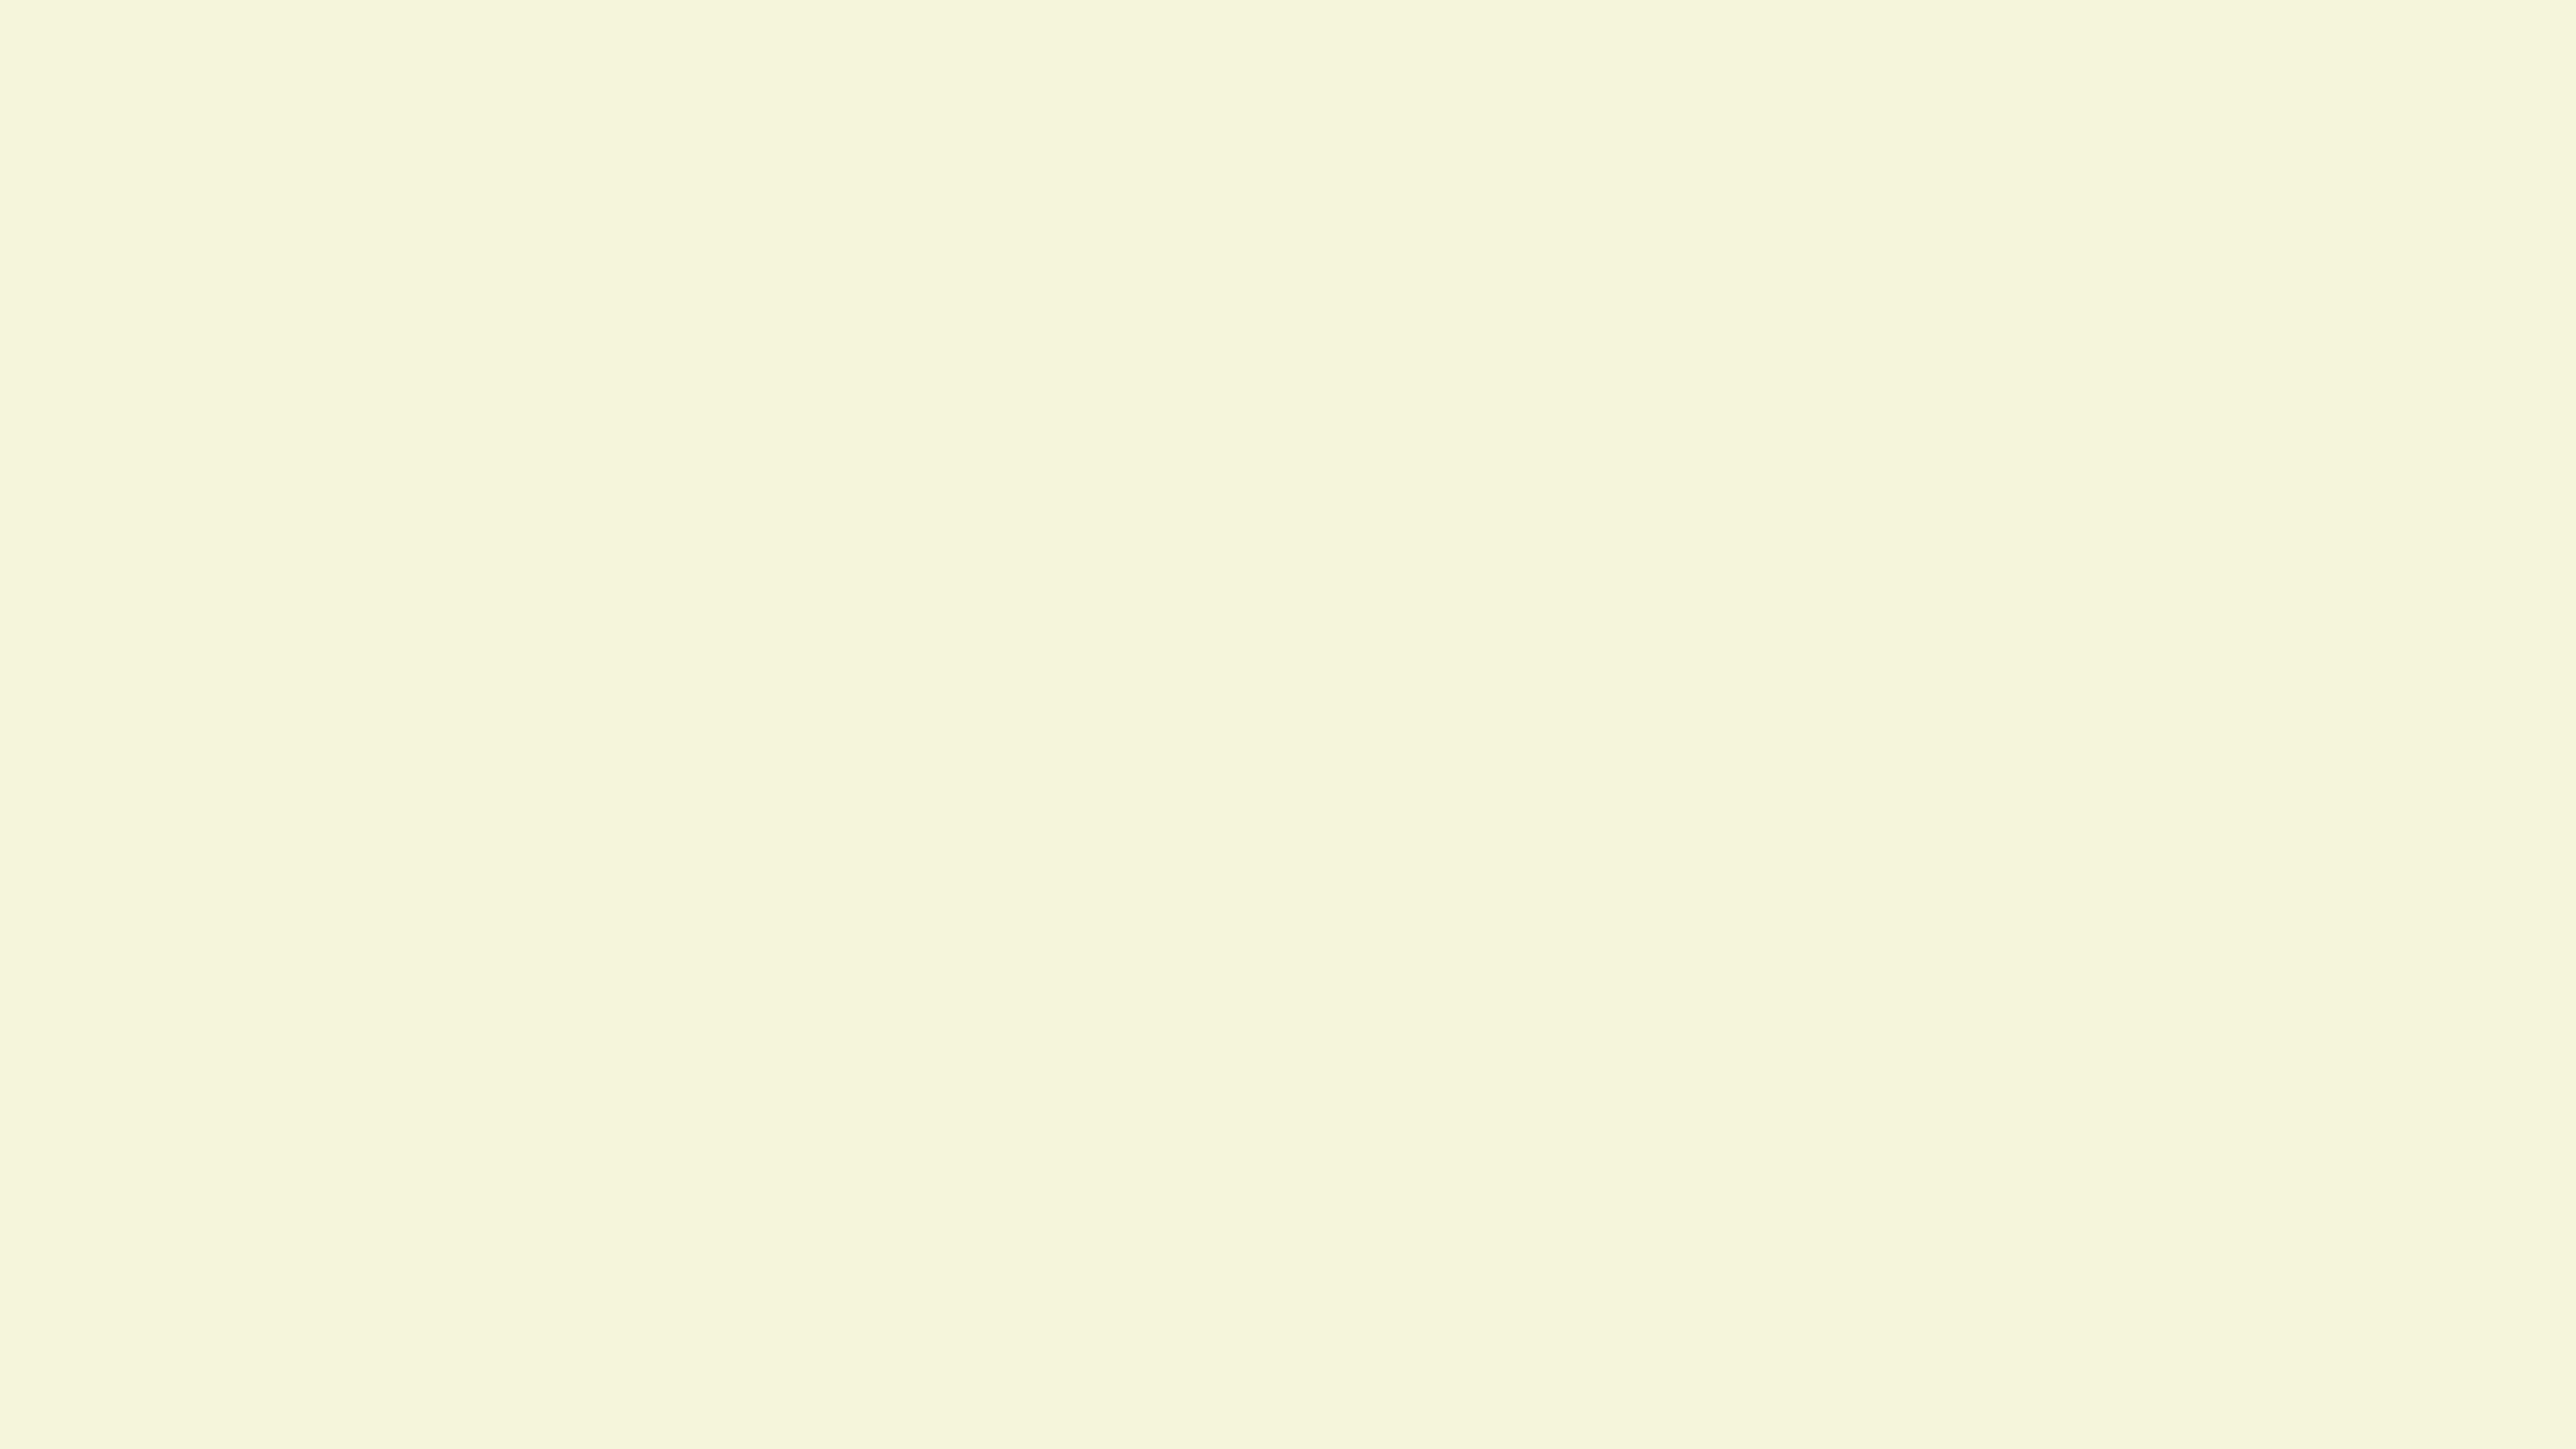 7680x4320 Beige Solid Color Background